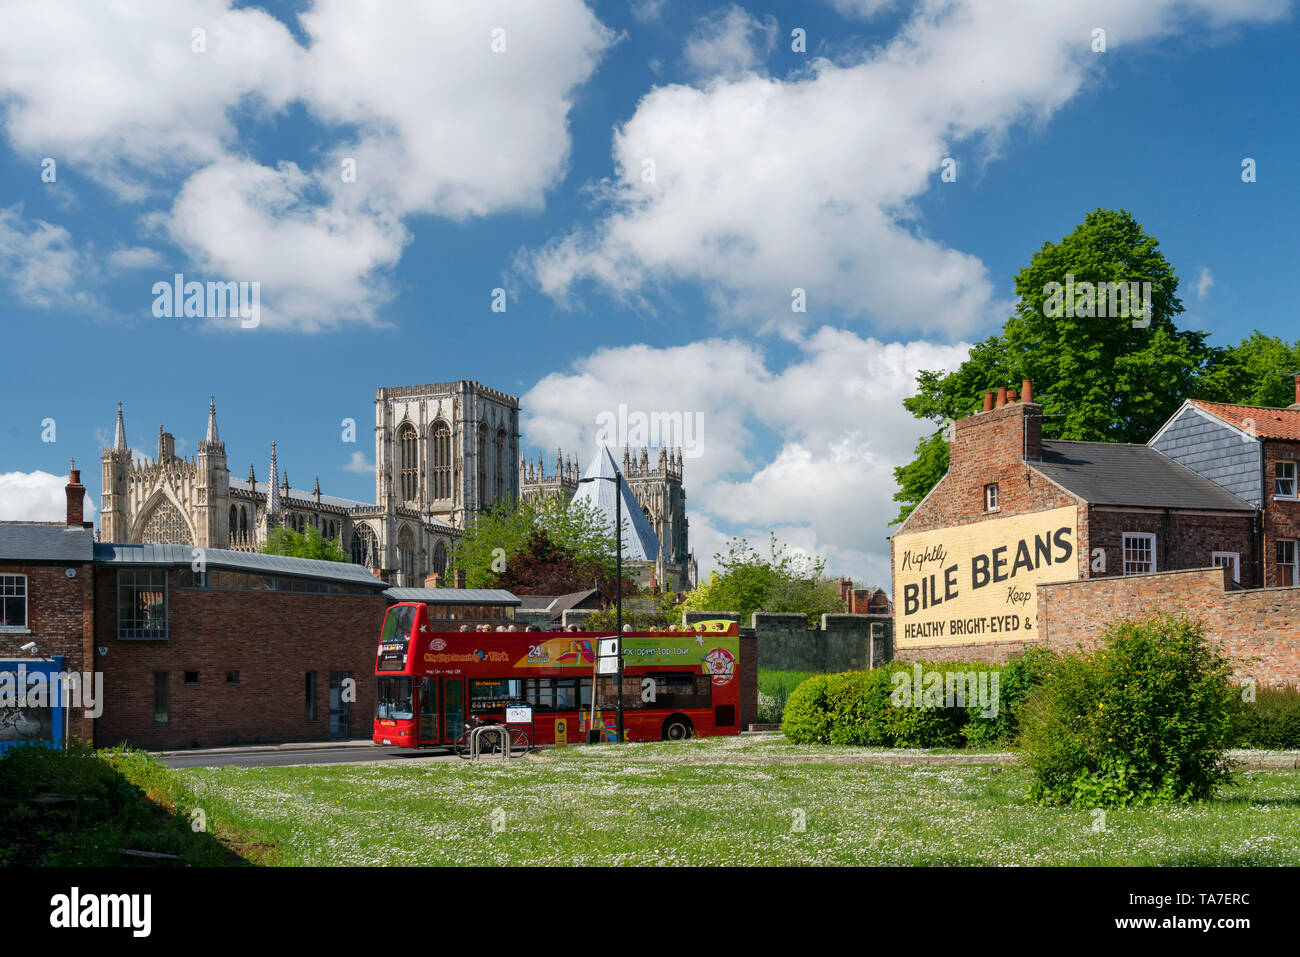 York Minster and the Bile Beans Ghost sign at Lord Mayors Walk, just outside the York city Bar Walls, North Yorkshire, UK. - Stock Image